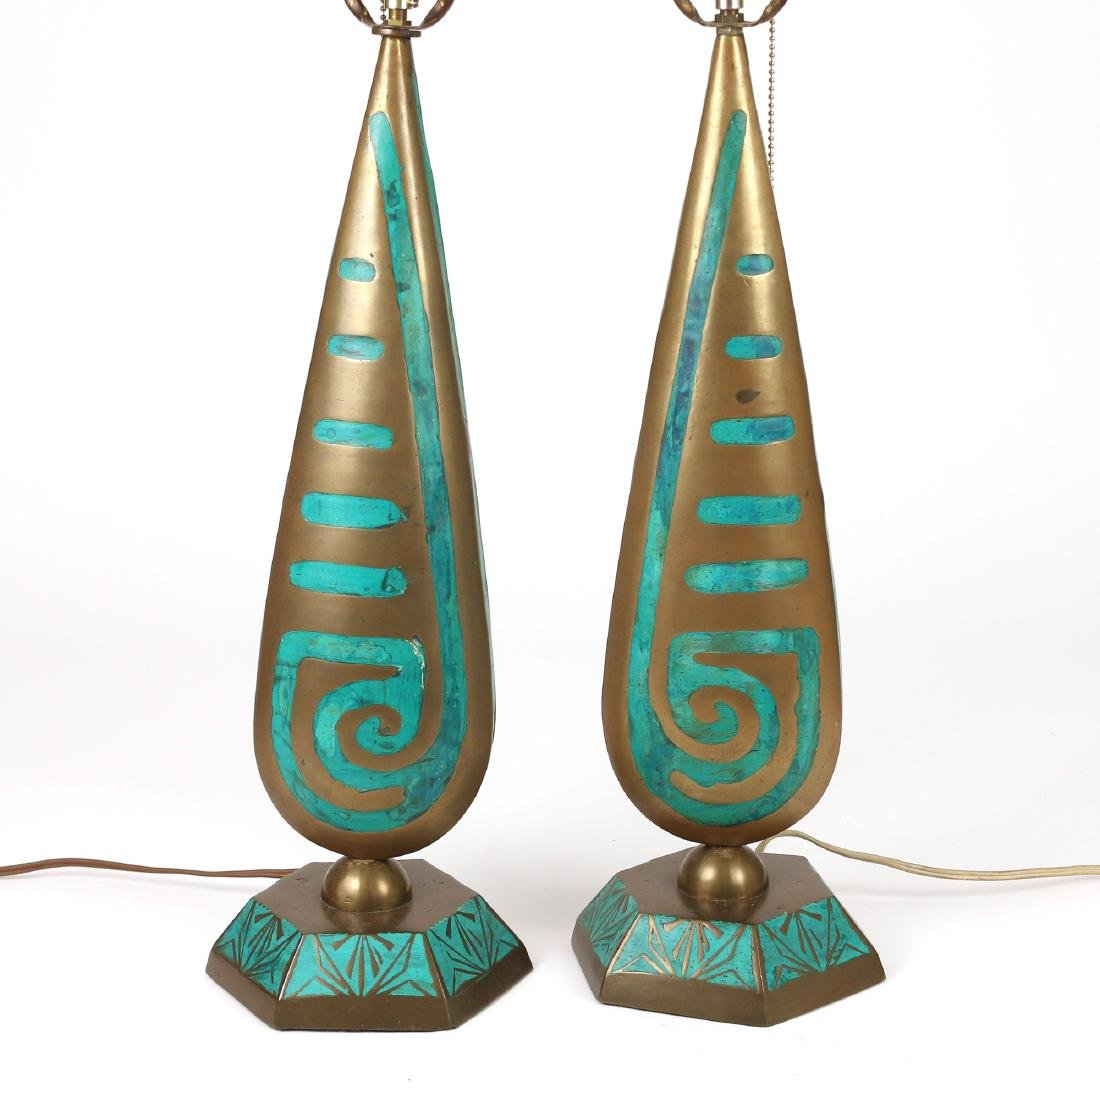 PAIR BRASS & ENAMEL DECORATED LAMPS